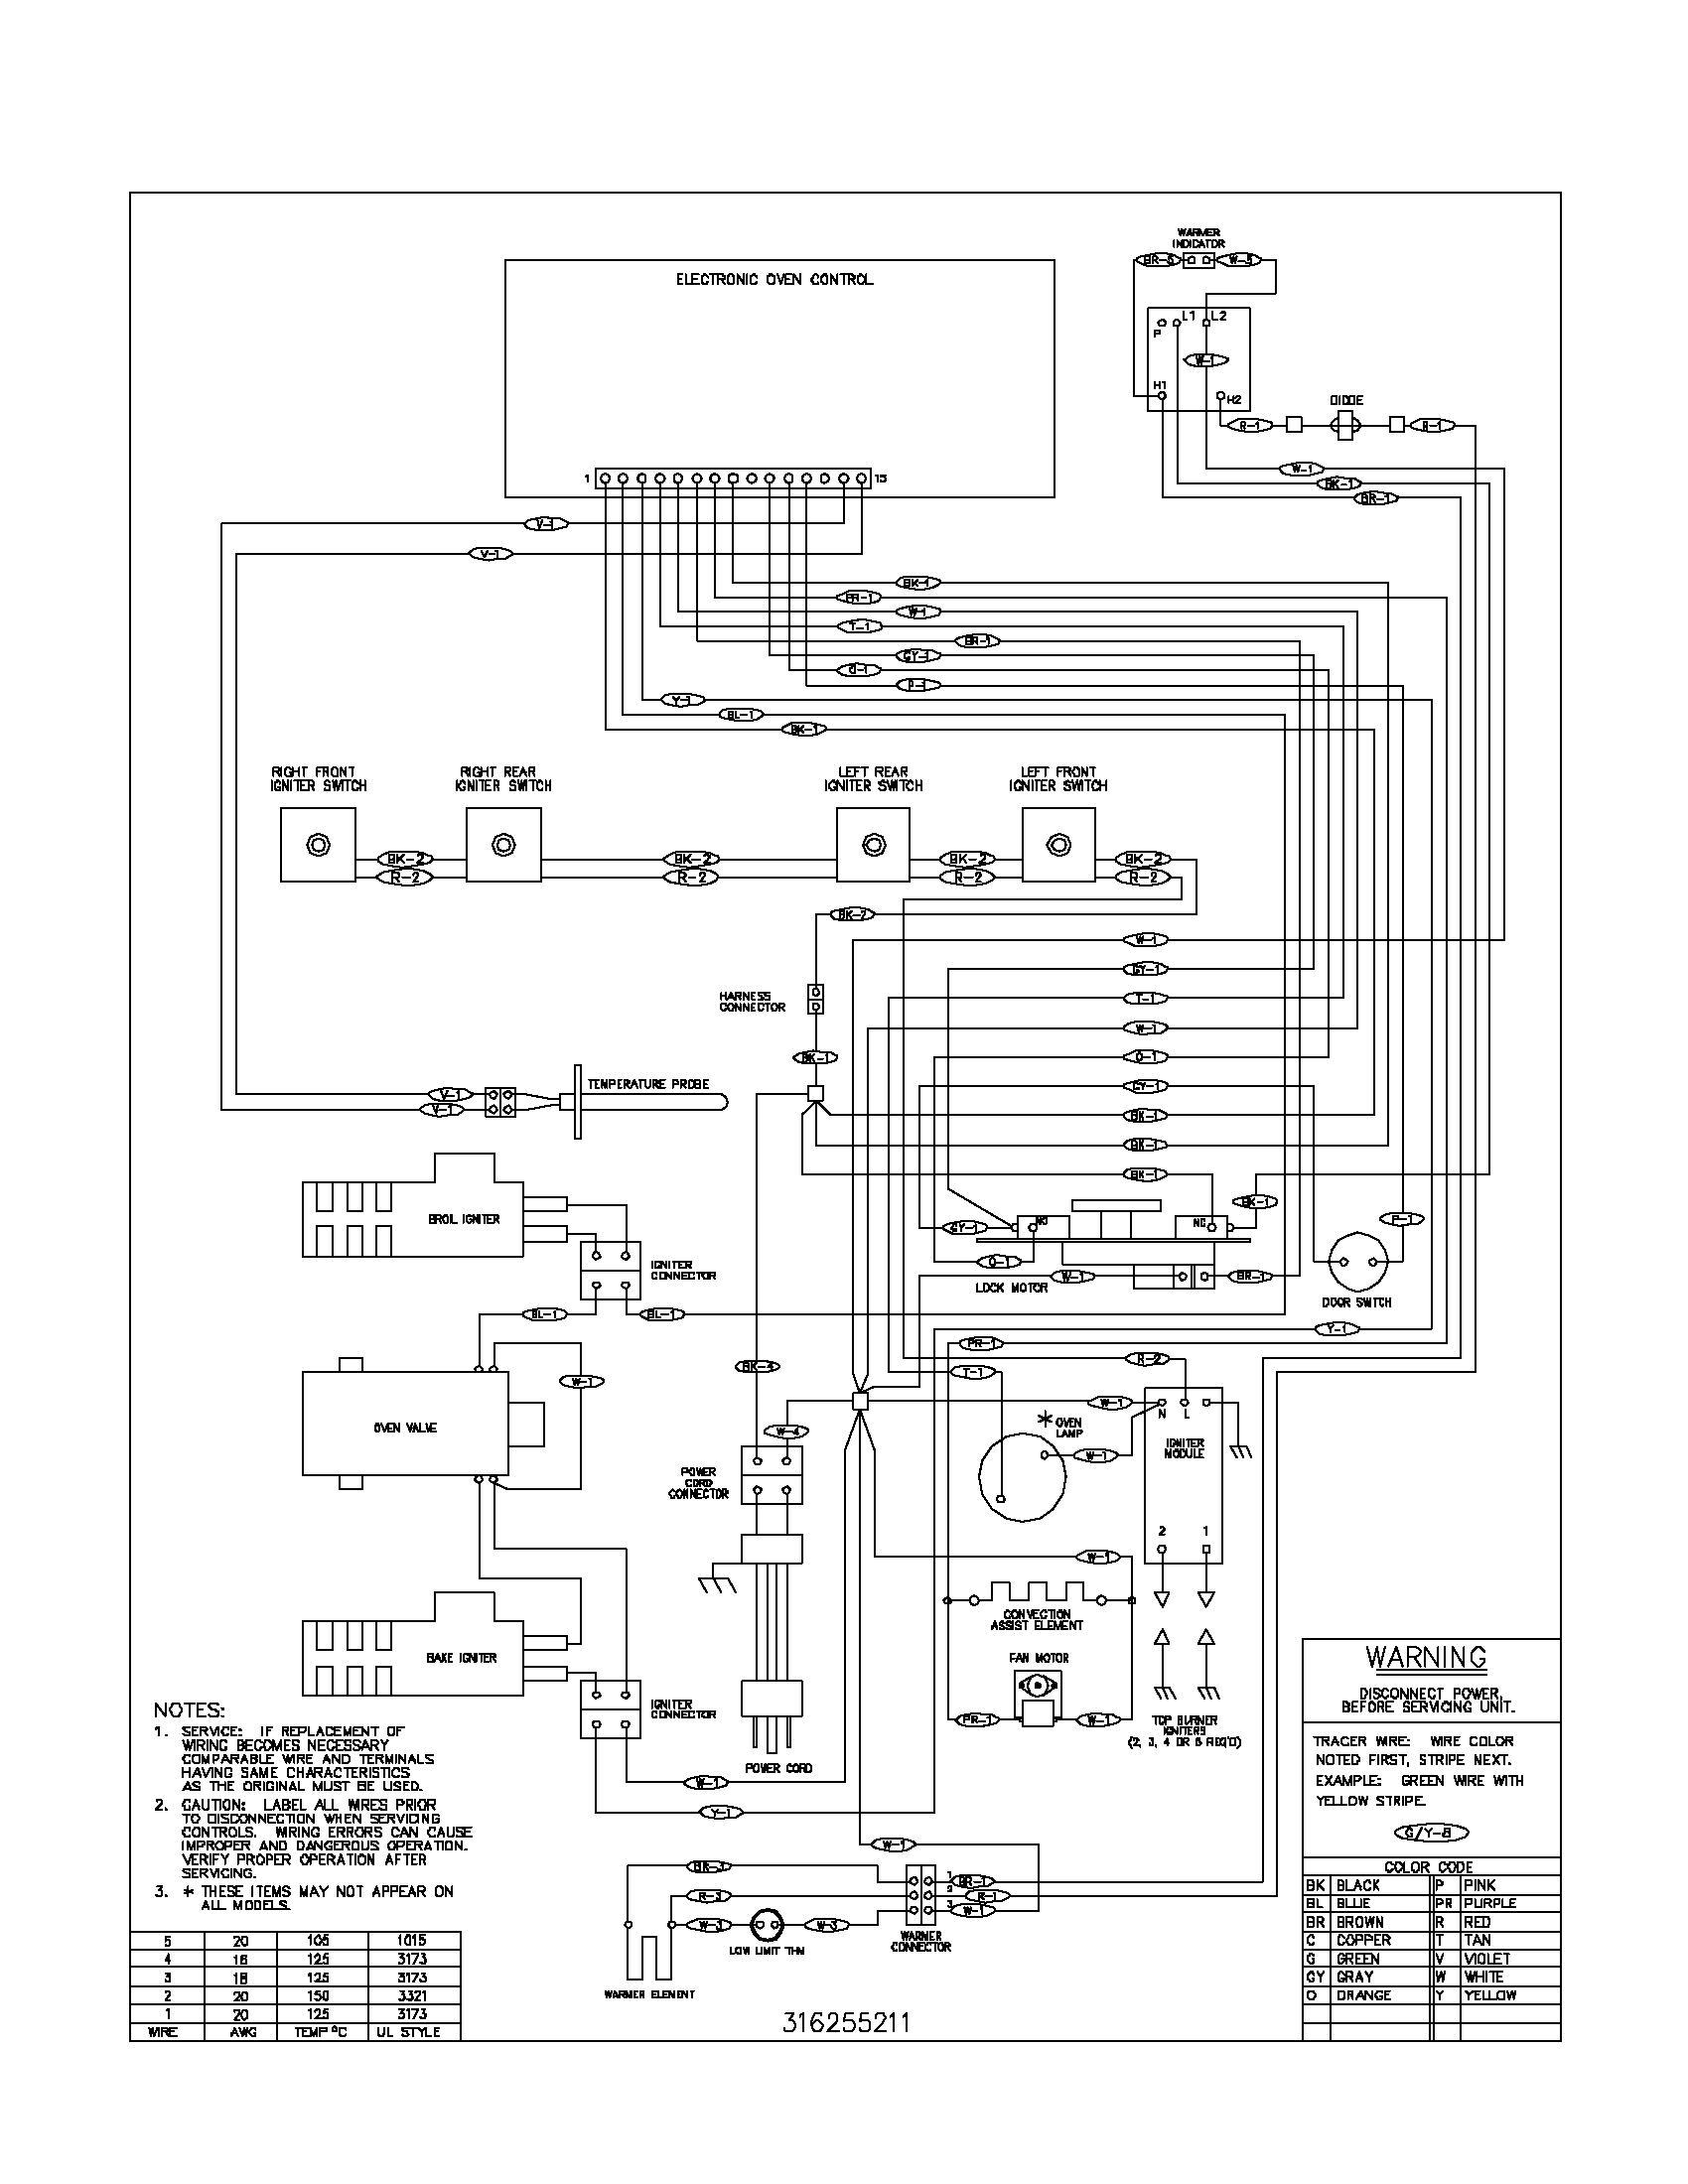 frigidaire wall oven wiring diagram Collection-Frigidaire Dryer Wiring Diagram New Best Free Sample Ideas Frigidaire Dryer Wiring Diagram 8-q